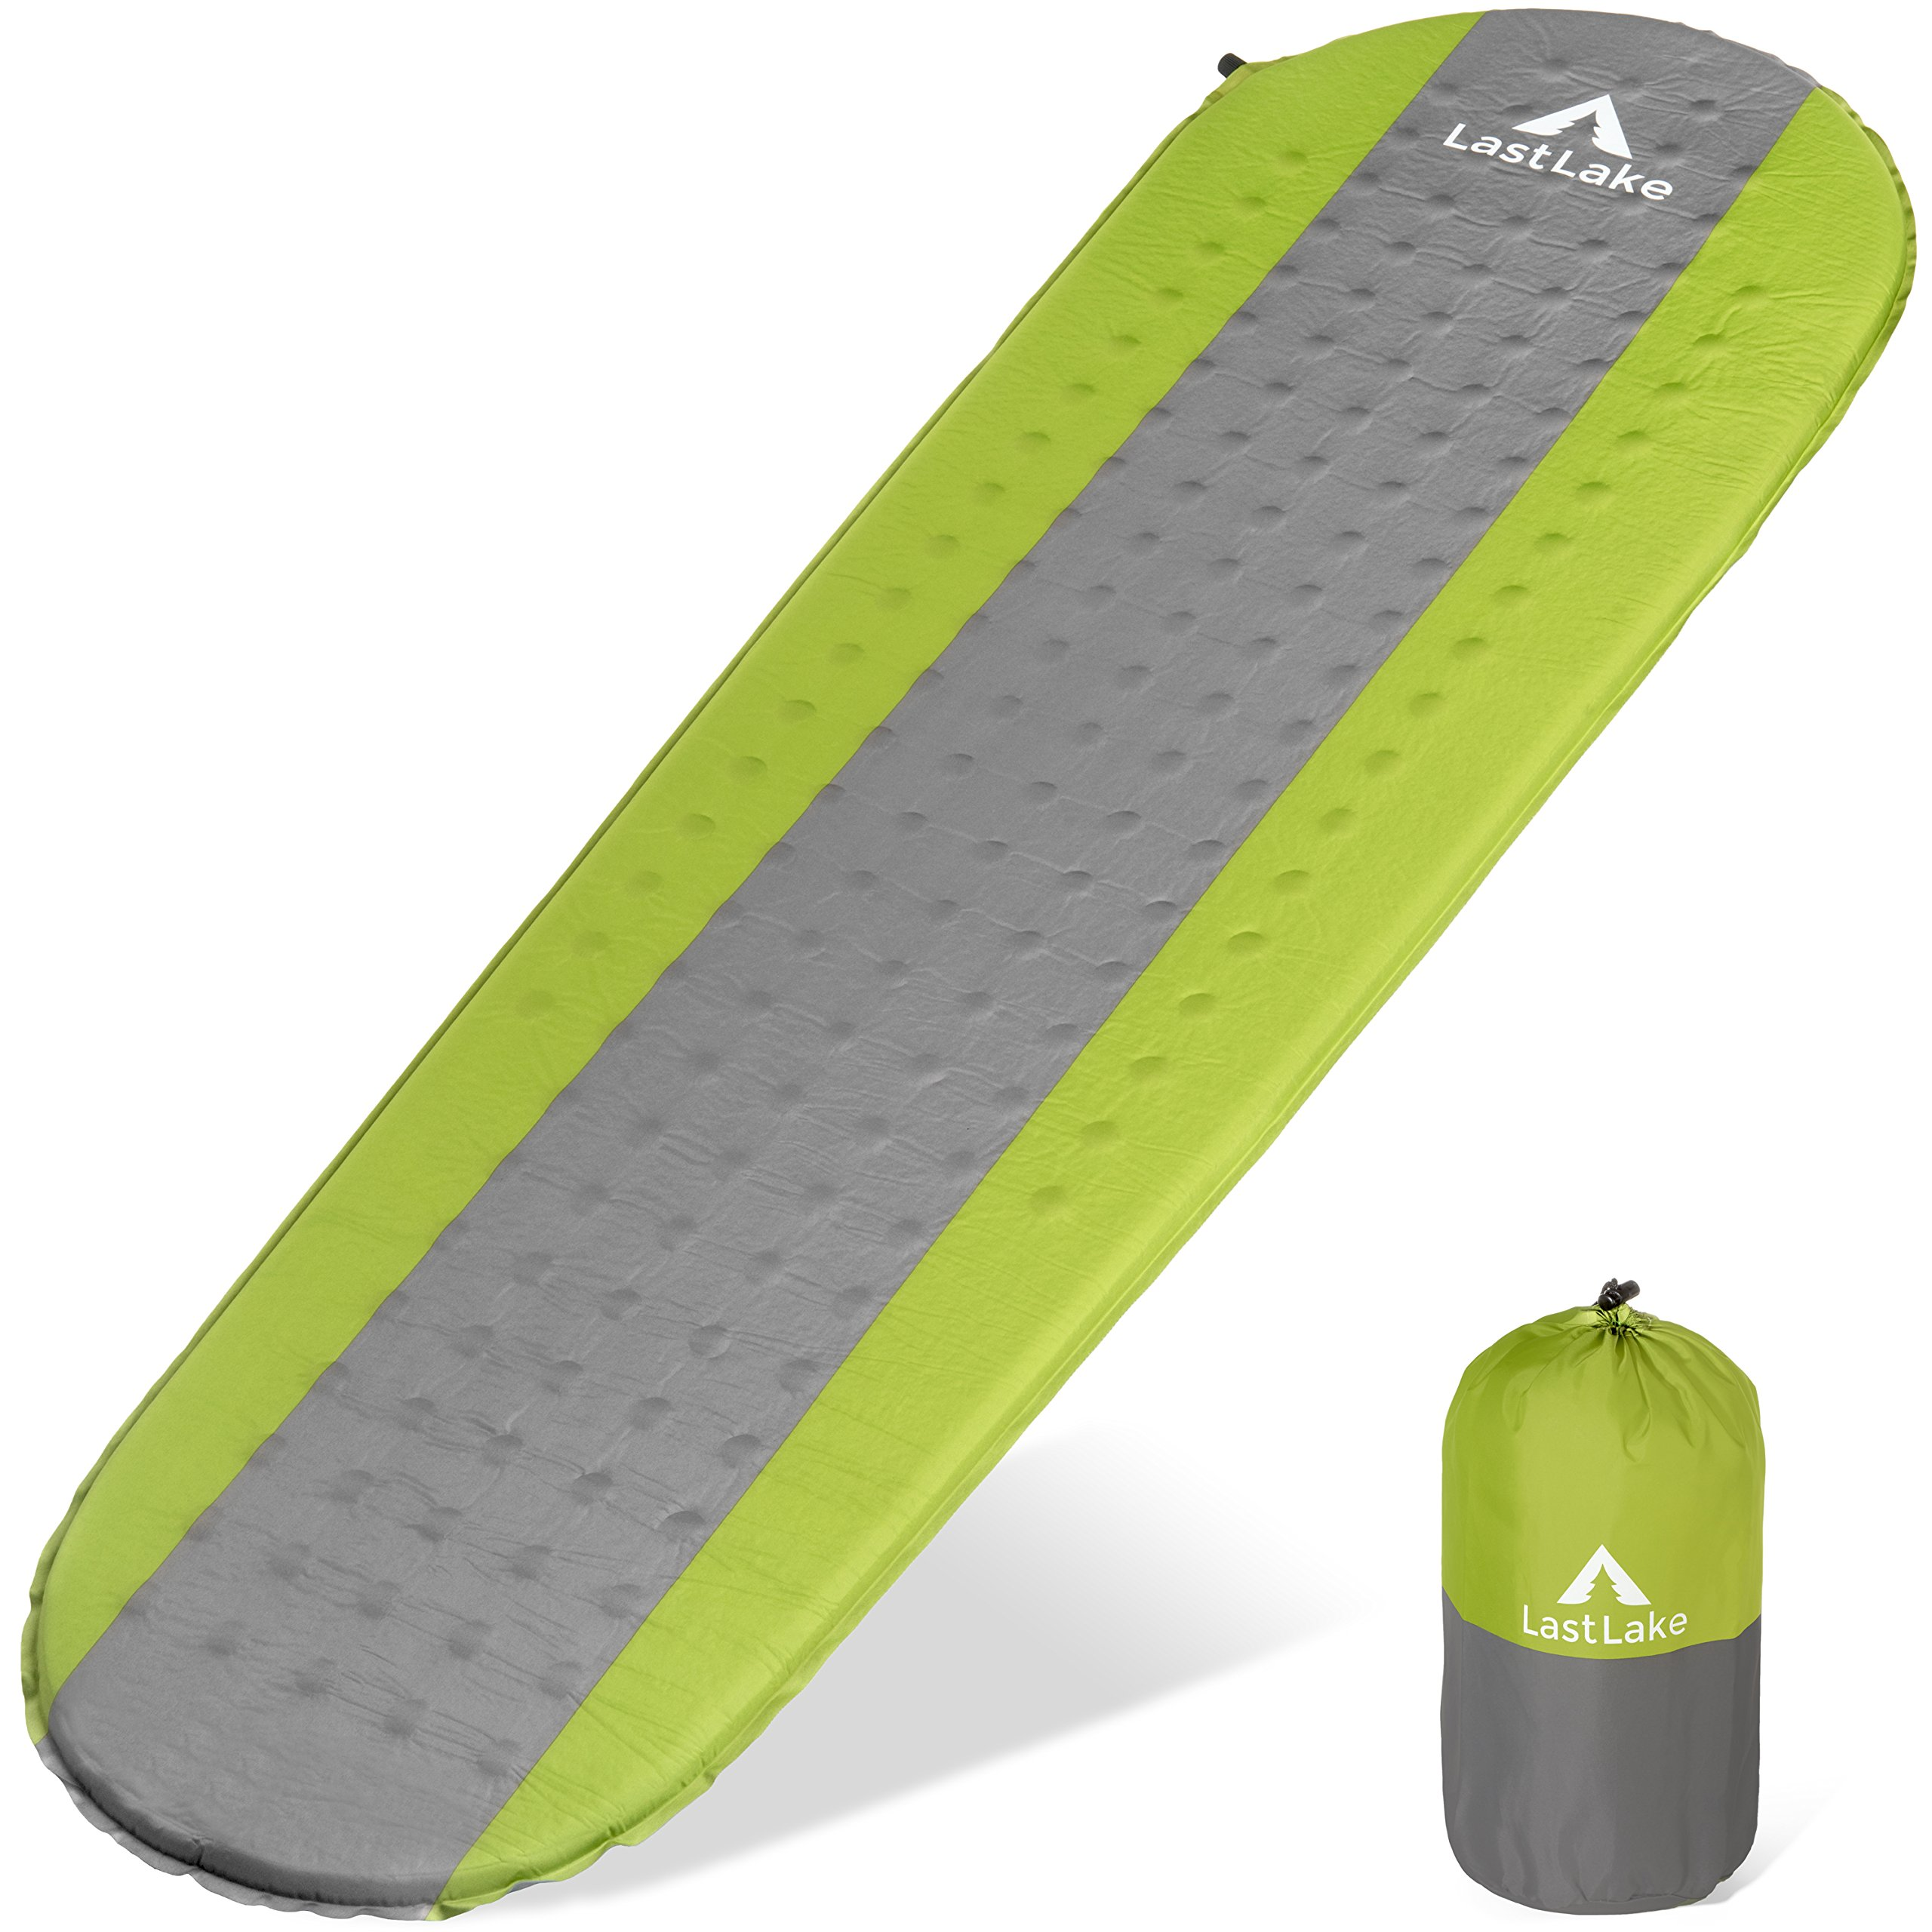 Camping Sleeping Pad - Self Inflating Mats - Lightweight, Thick Foam Layer, Insulated - Inflatable Pads Will Not Leak Air - Backpacking, Hiking by Last Lake